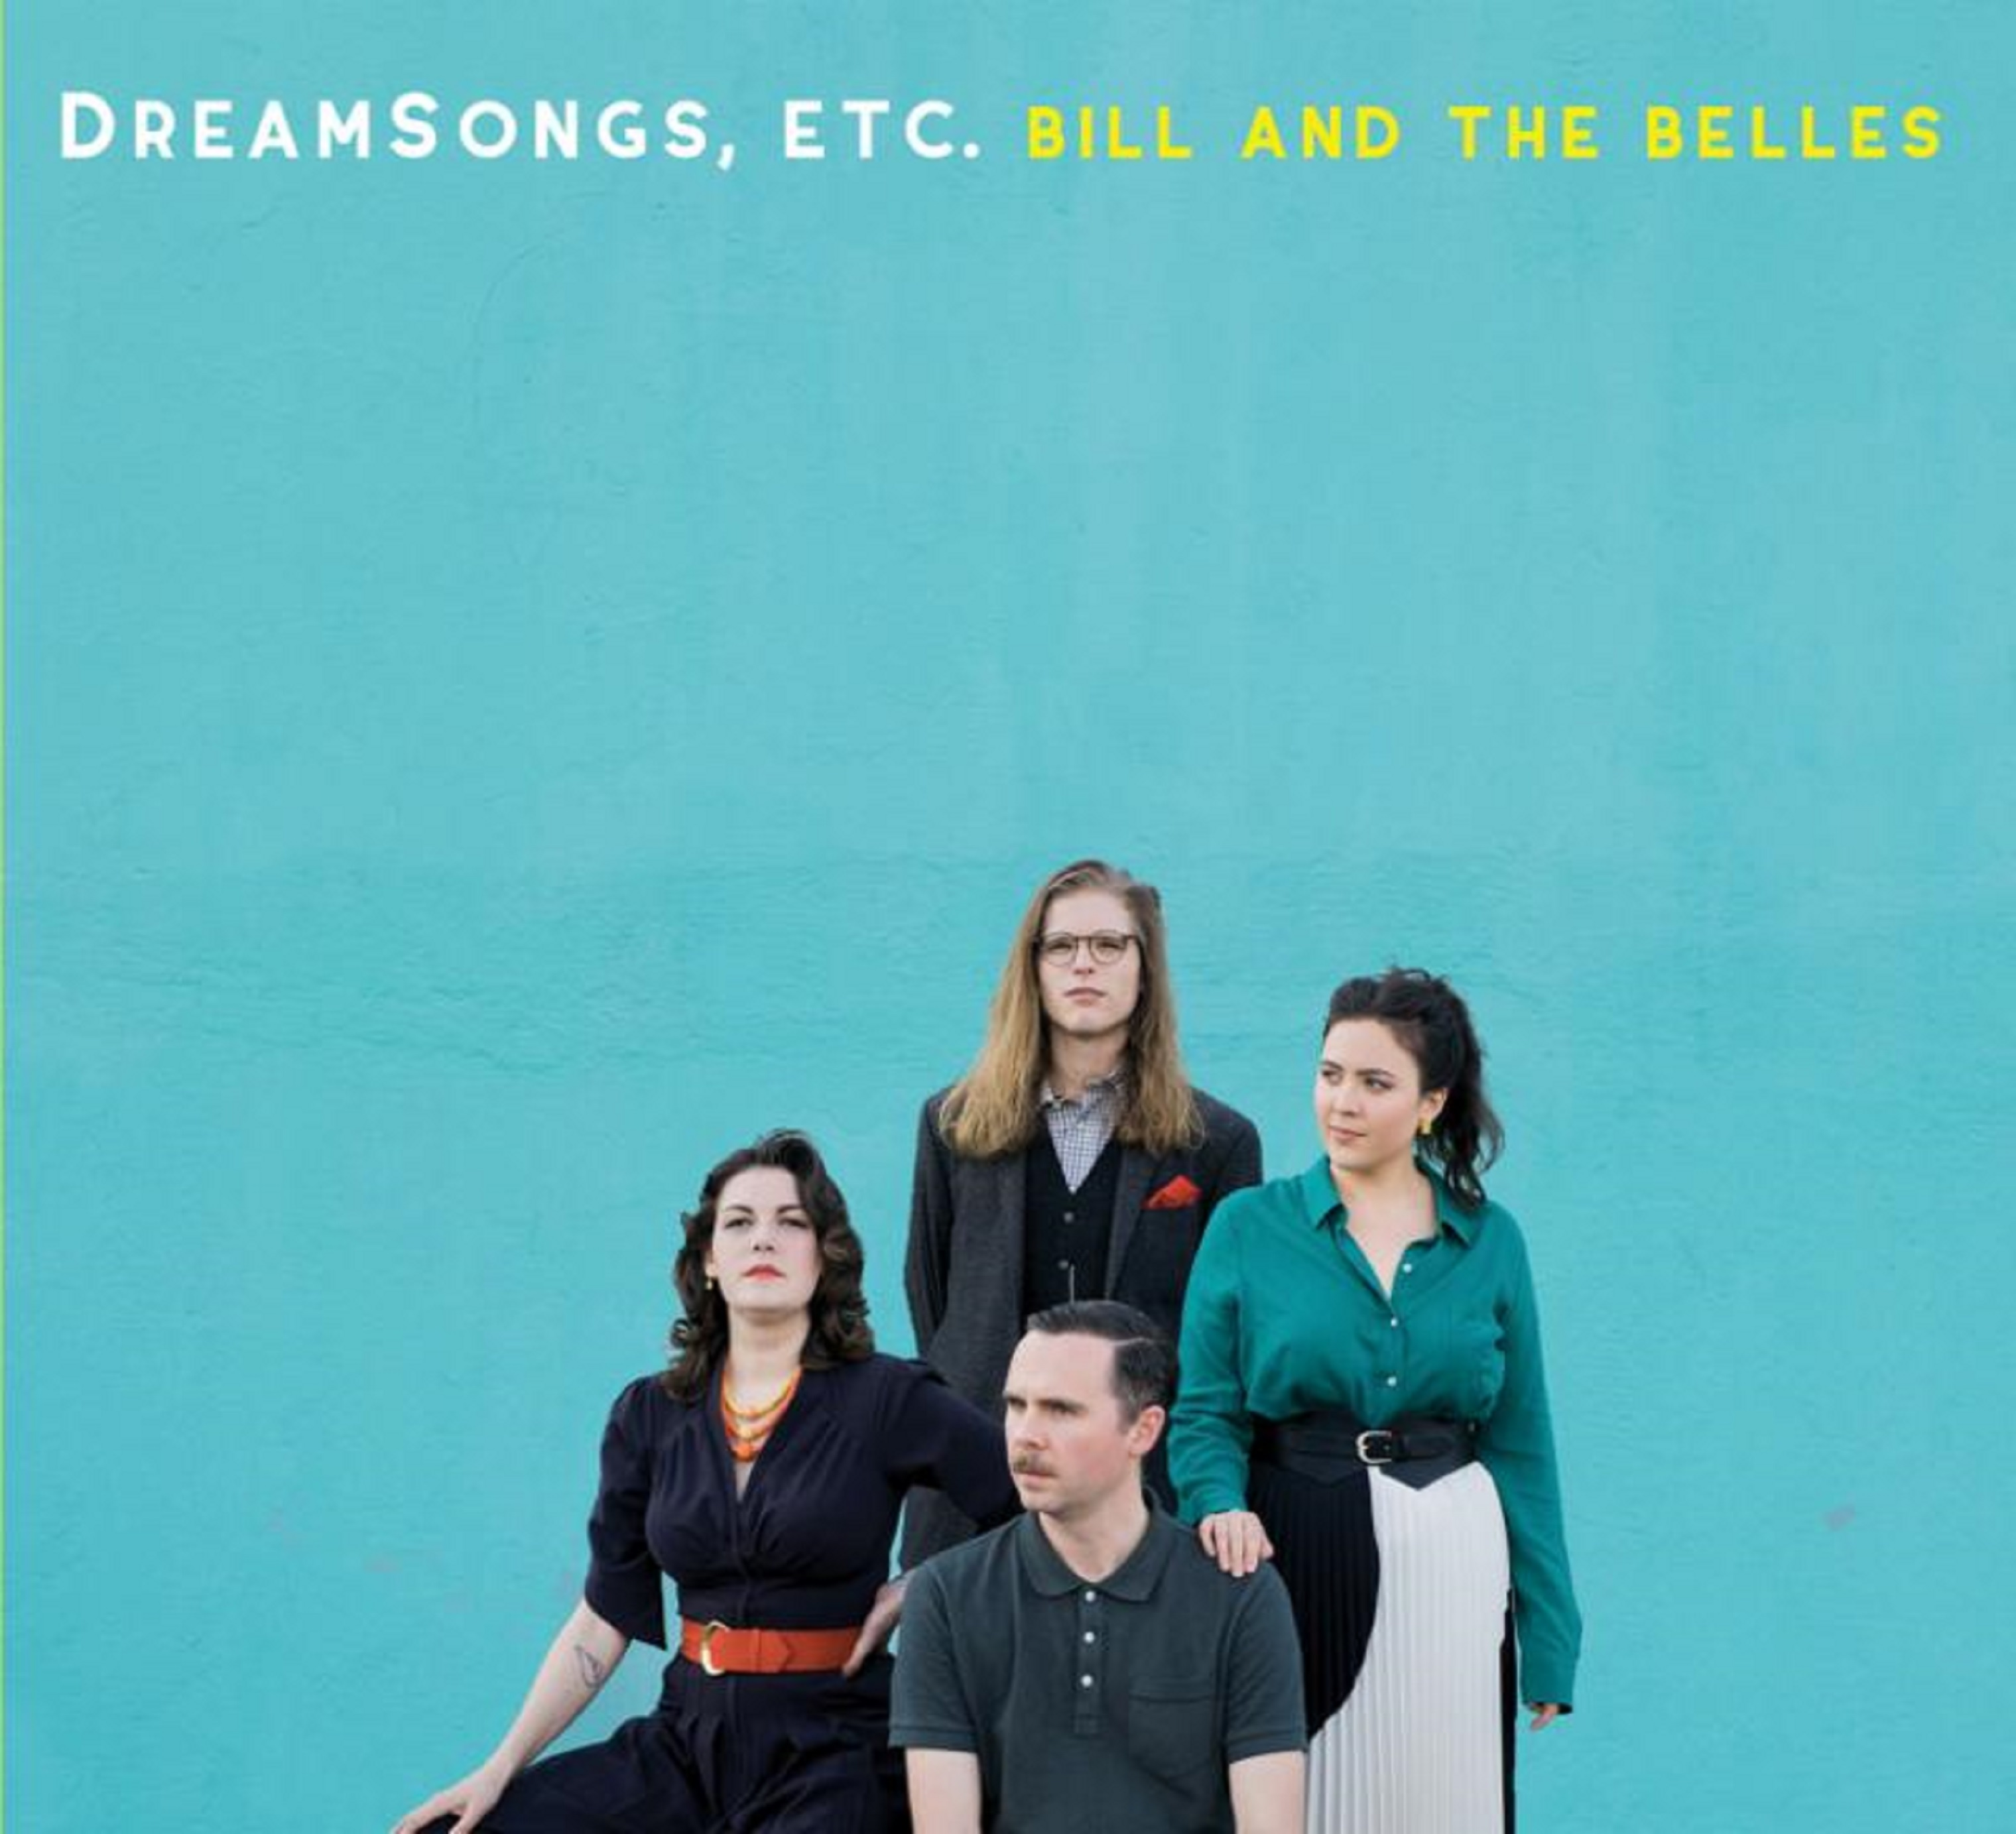 Bill and The Belles Announce Debut Album